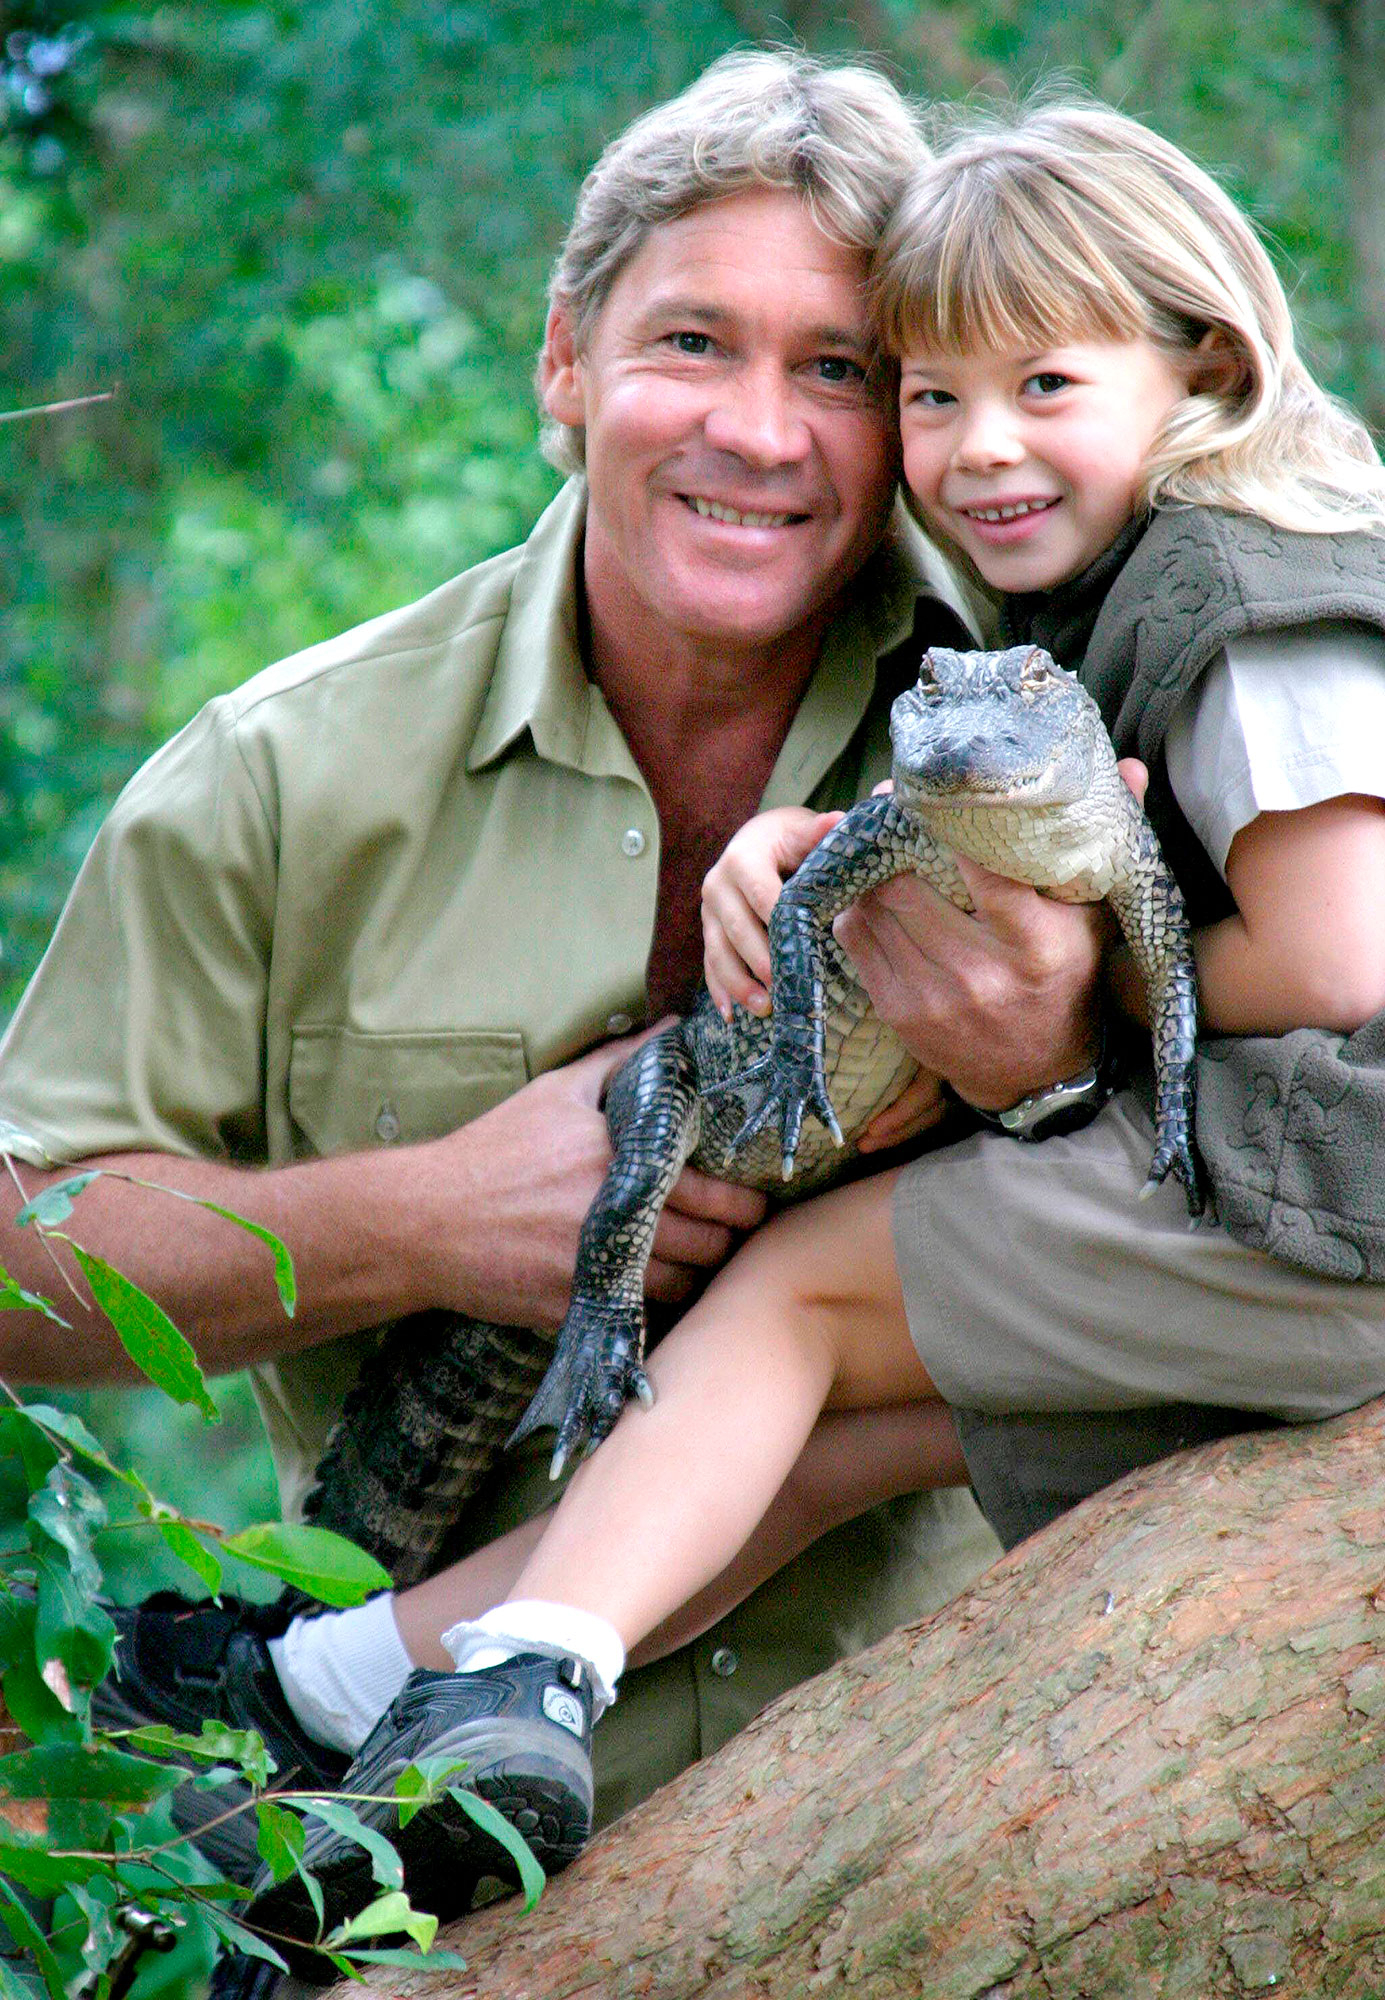 Steve Irwin with his daughter, Bindi Irwin, and a 3-year-old alligator called 'Russ' at Australia Zoo.